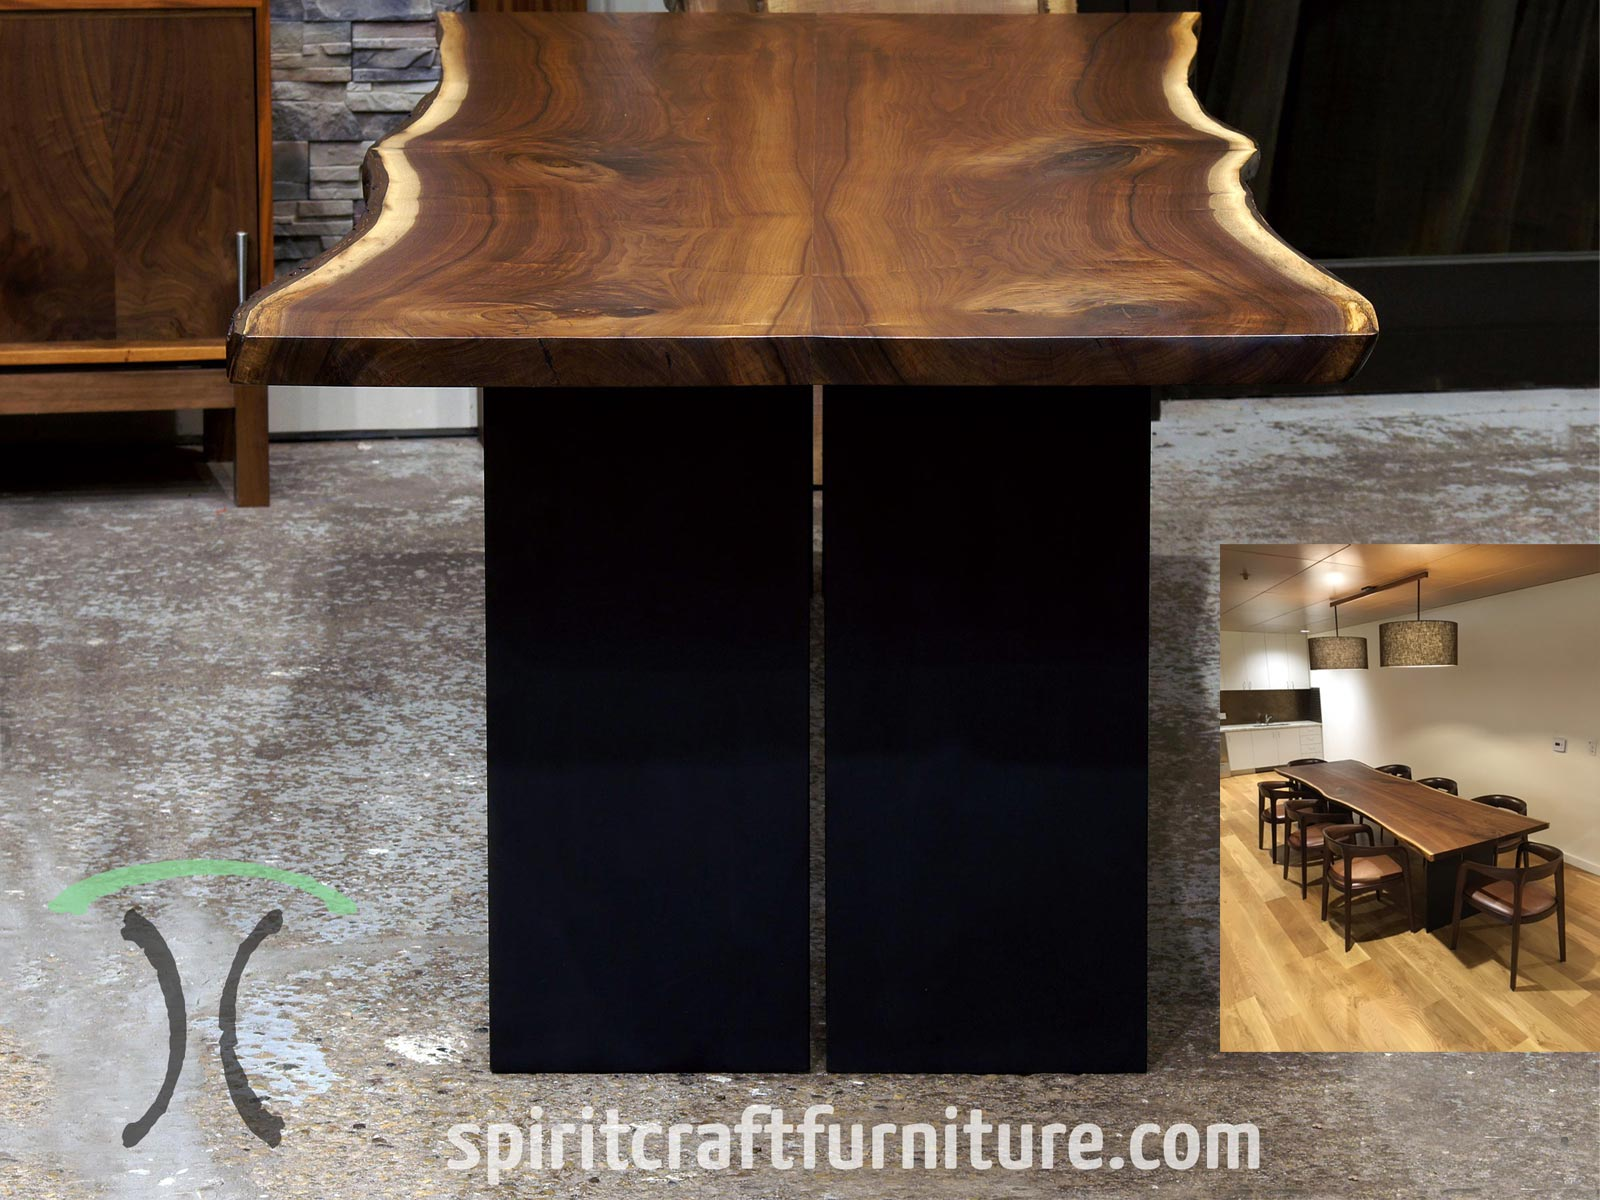 Live edge Black Walnut corporate headquarters conference room table at Kendall Jackson Winery in Santa Rosa, California